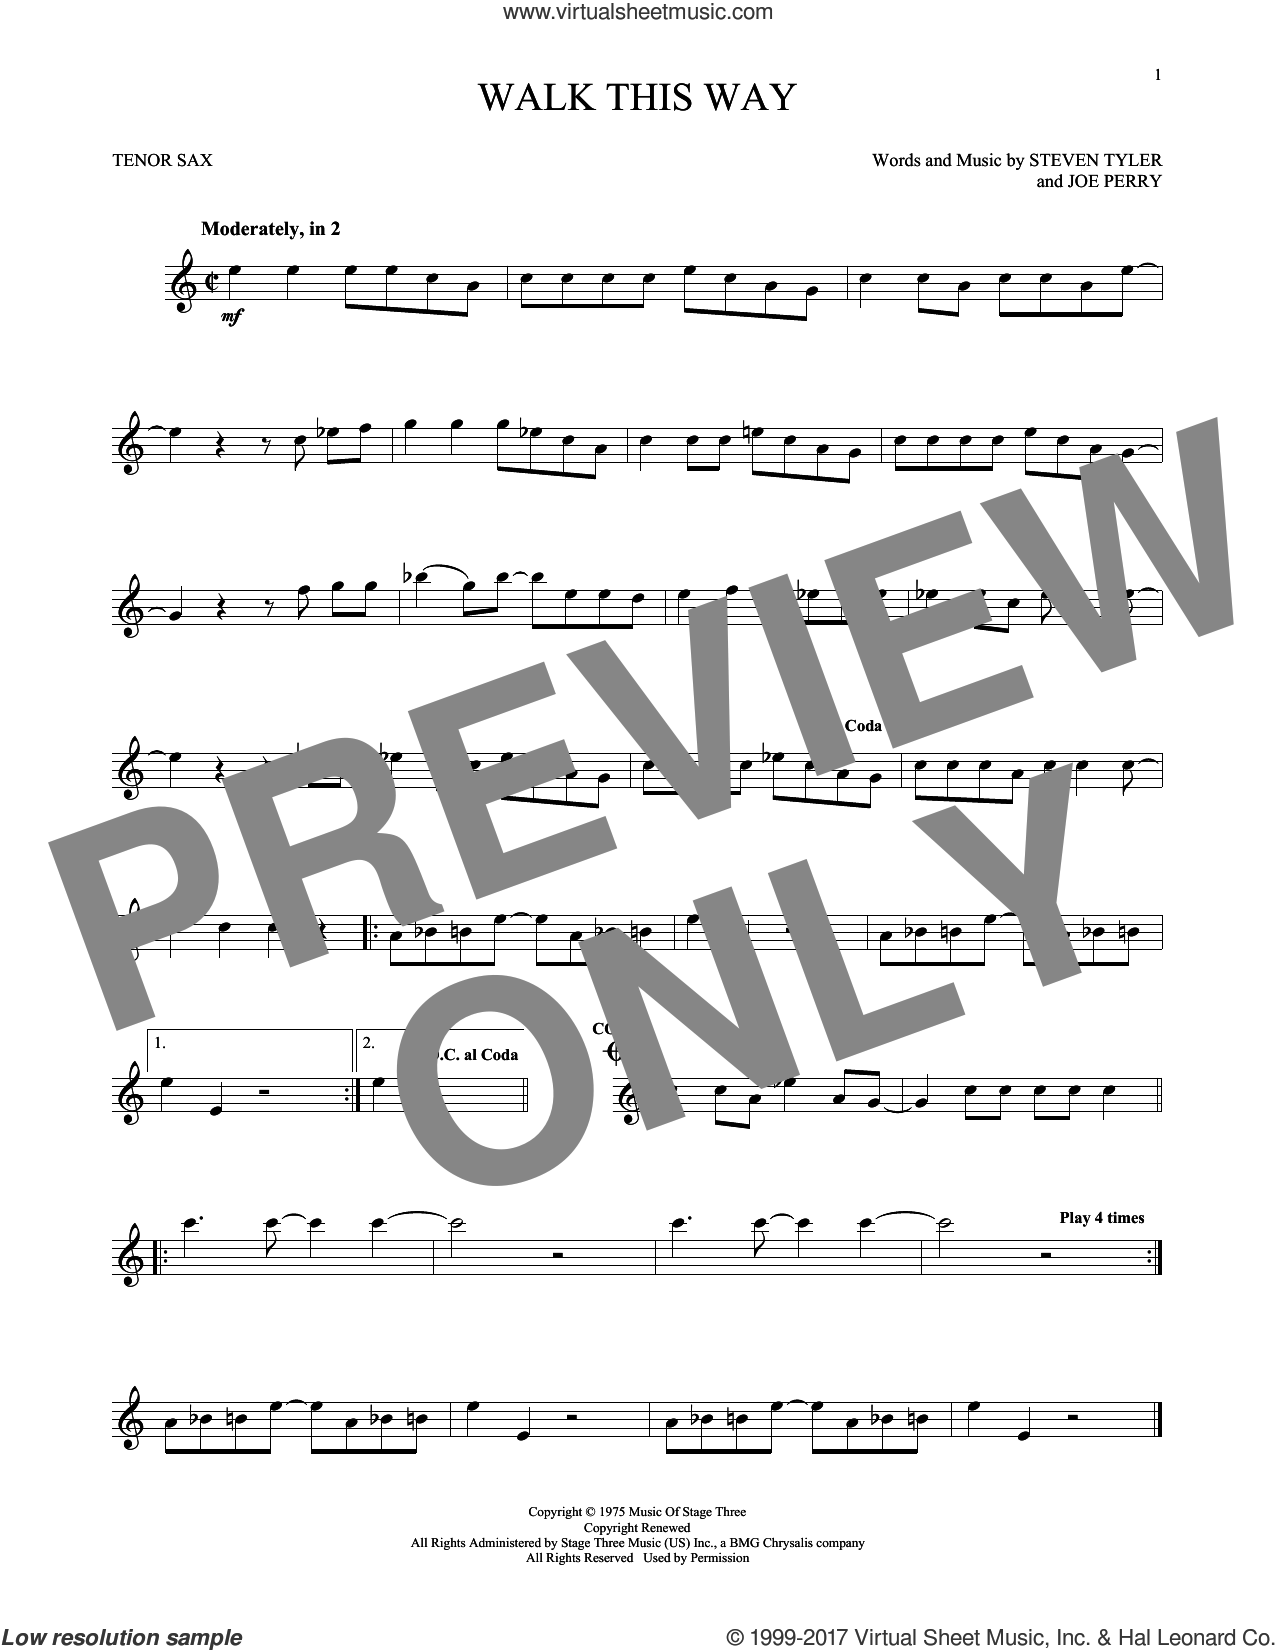 Walk This Way sheet music for tenor saxophone solo by Aerosmith, Run D.M.C., Joe Perry and Steven Tyler, intermediate skill level